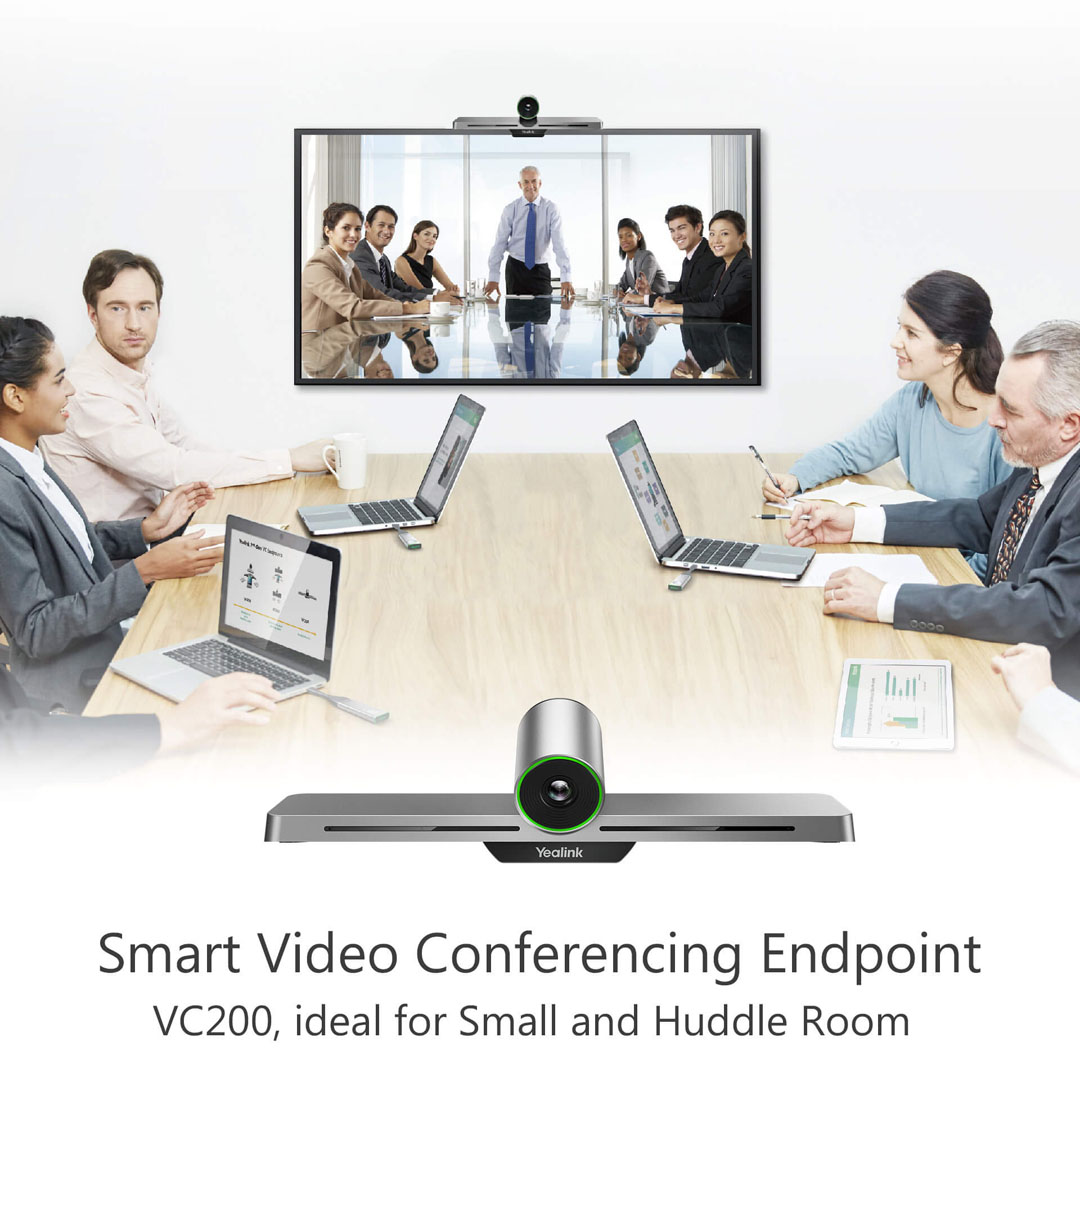 VC200_VC Room System_Products_Yealink   UC&C terminal, video